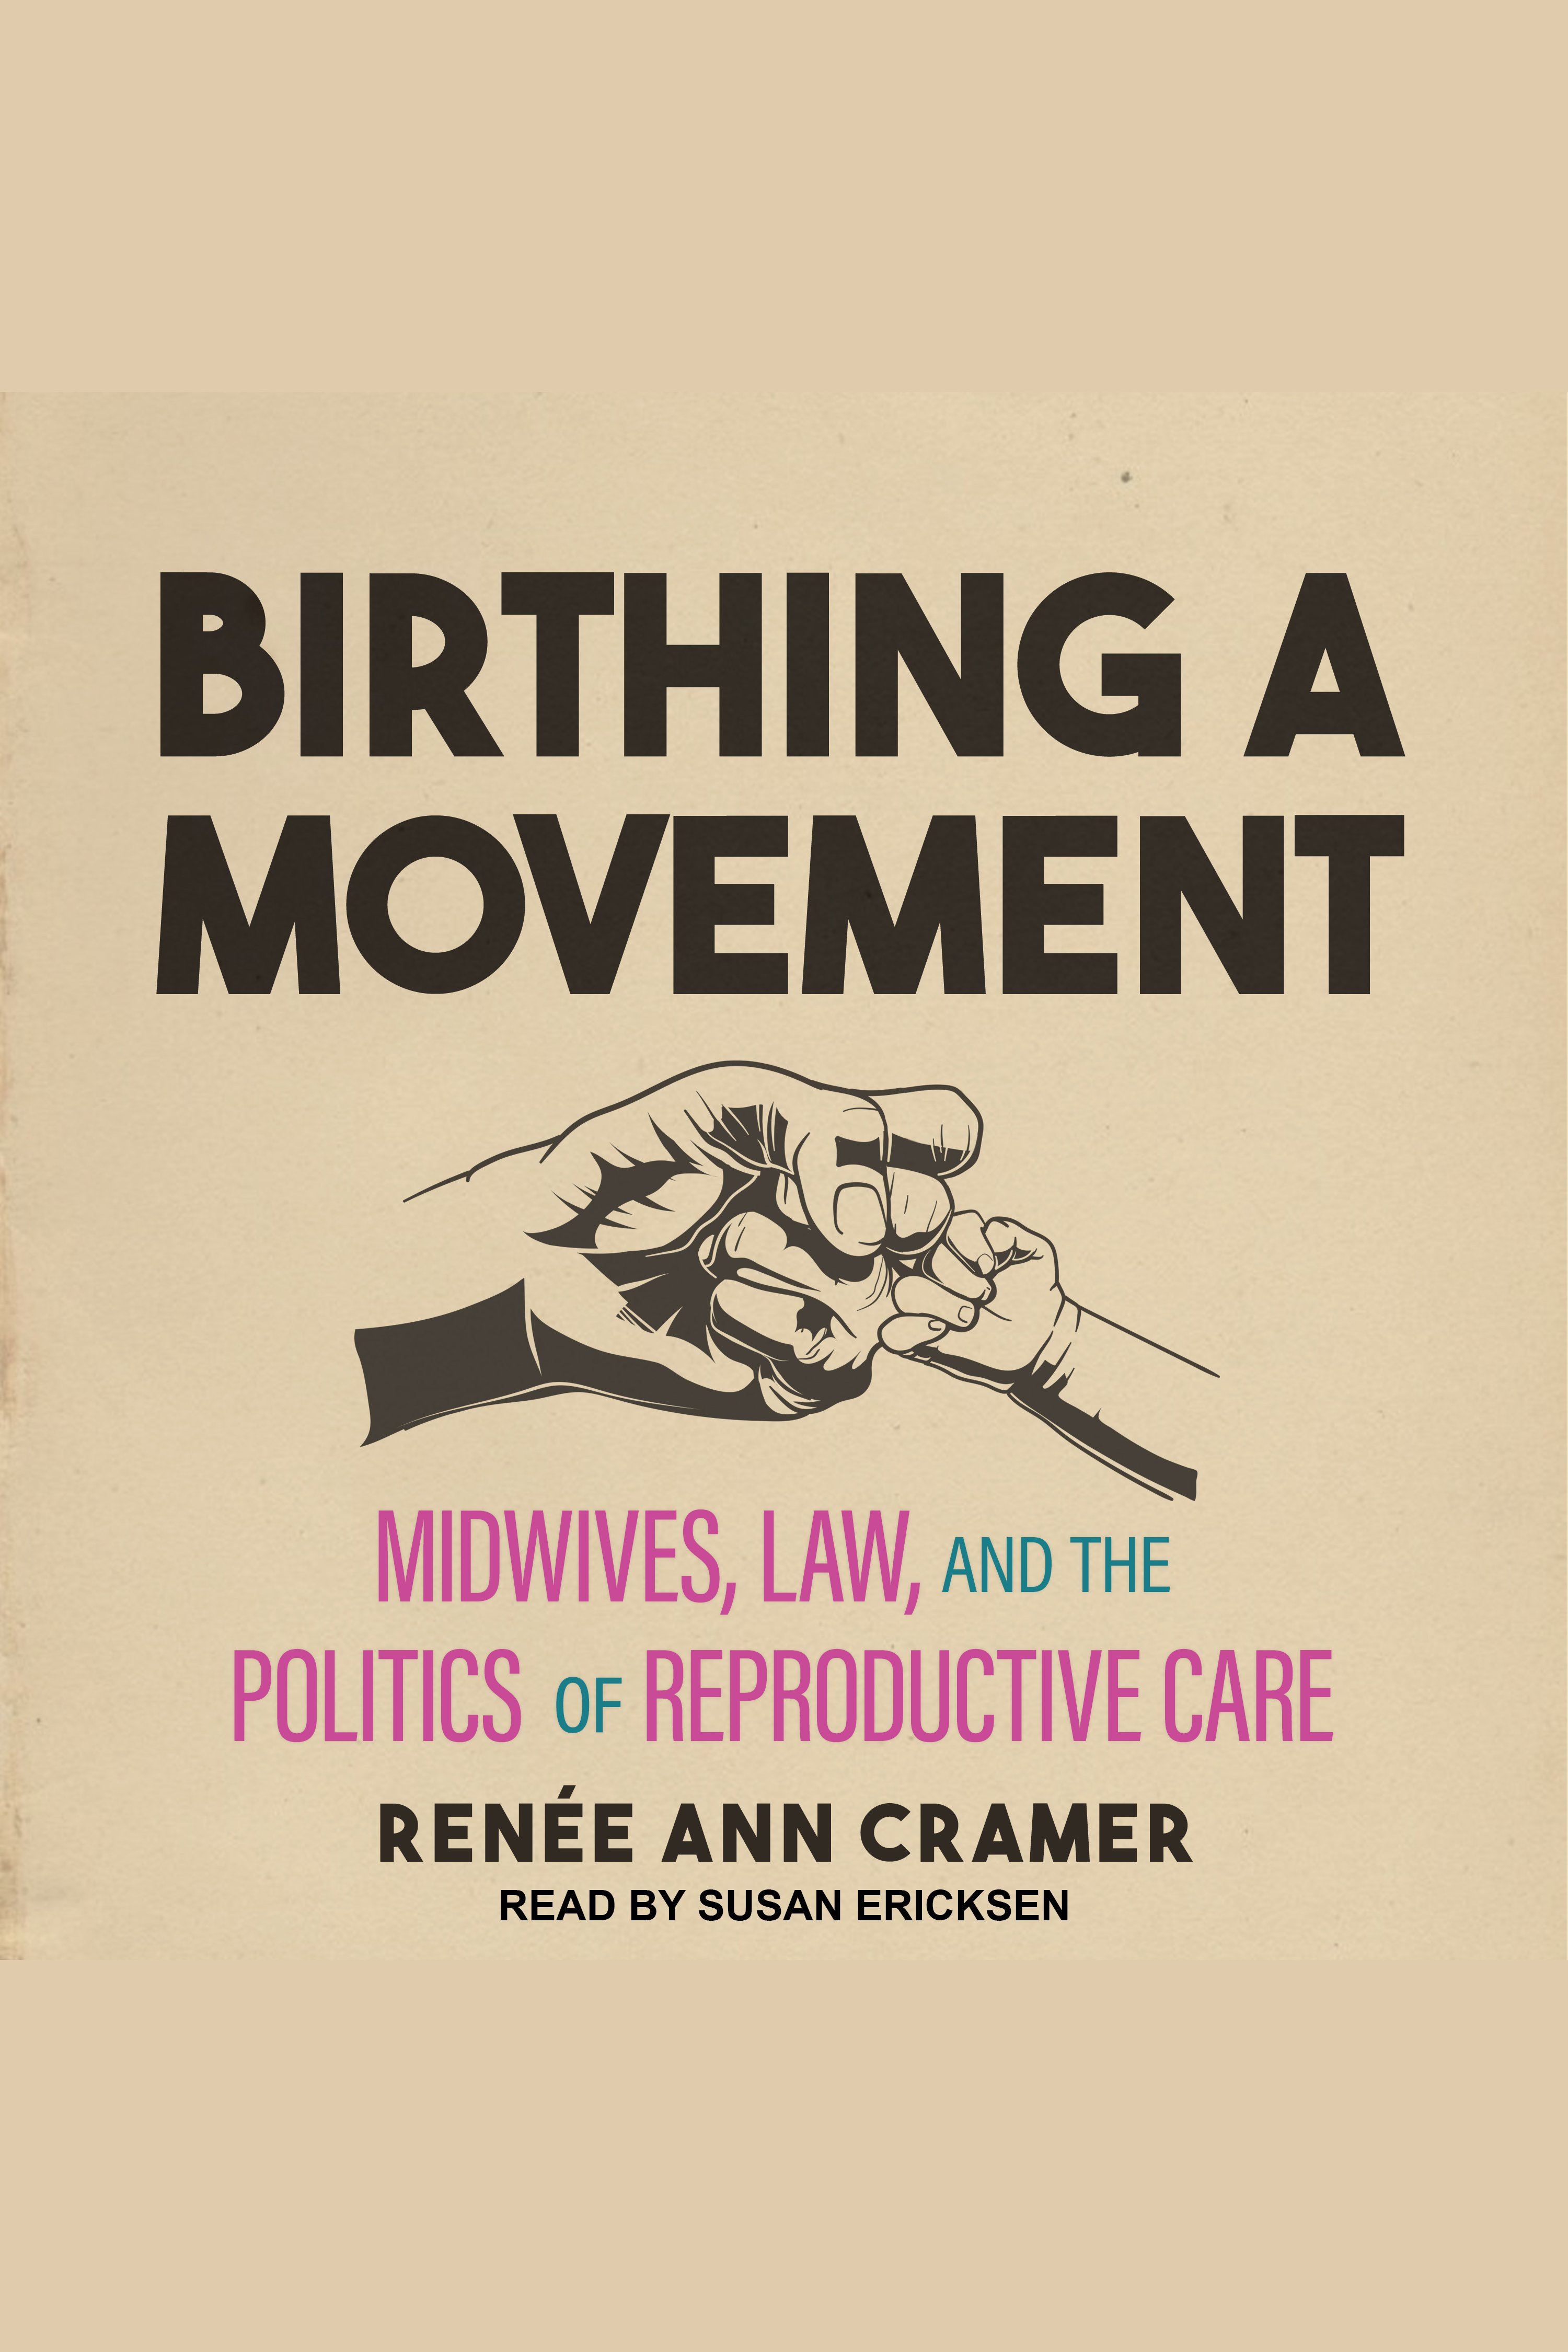 Birthing a Movement Midwives, Law, and the Politics of Reproductive Care